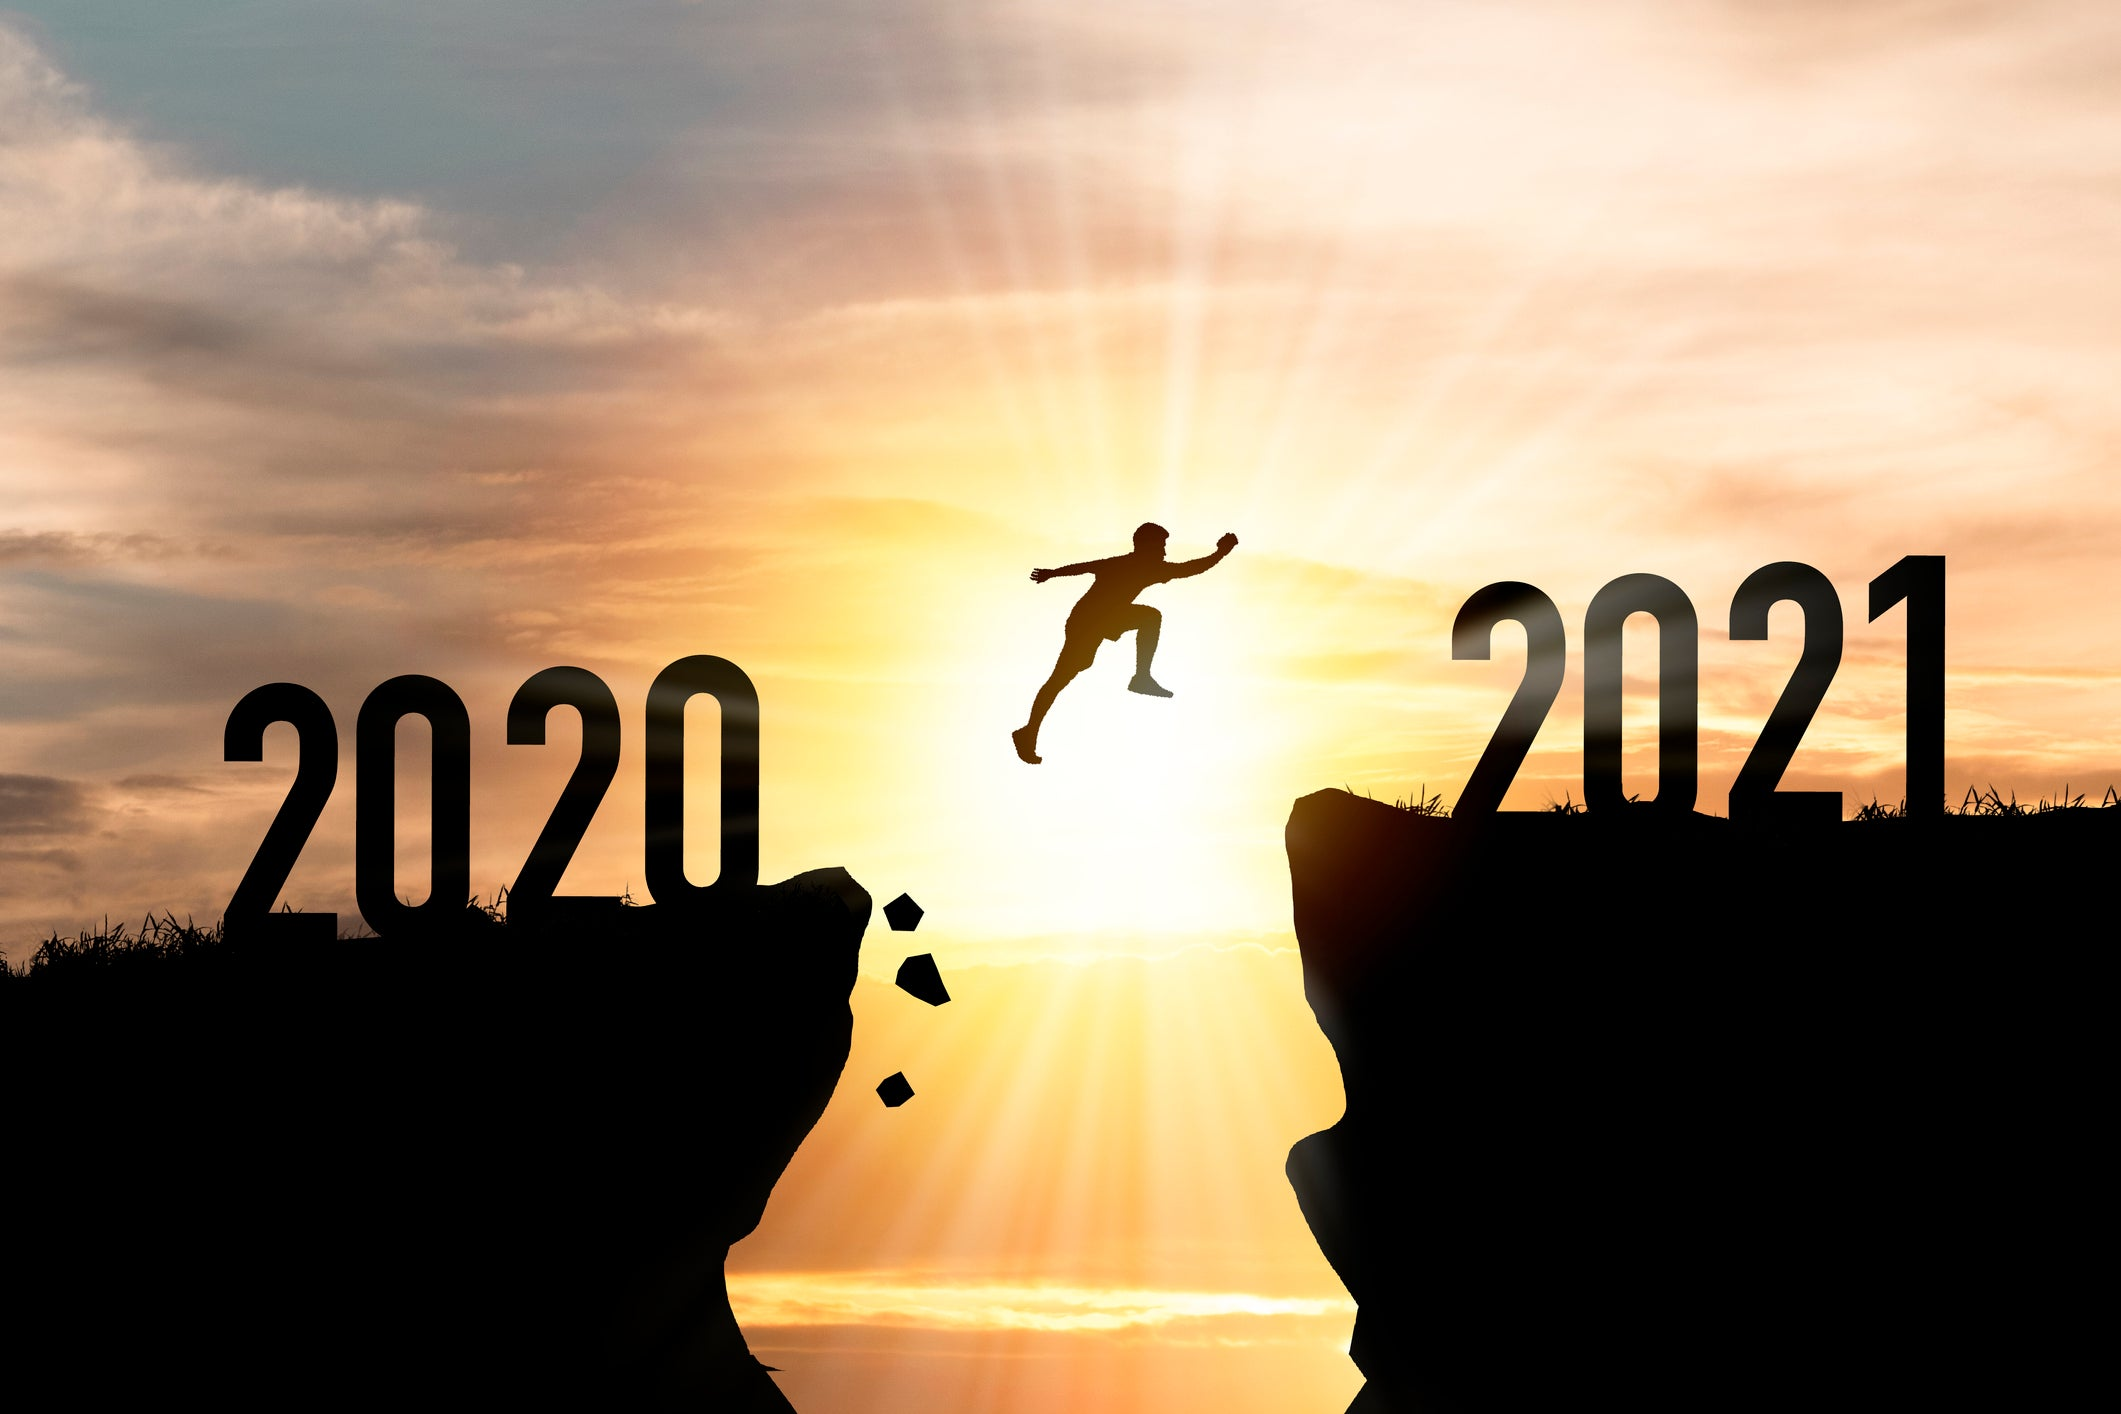 Person jumping from 2020 to 2021